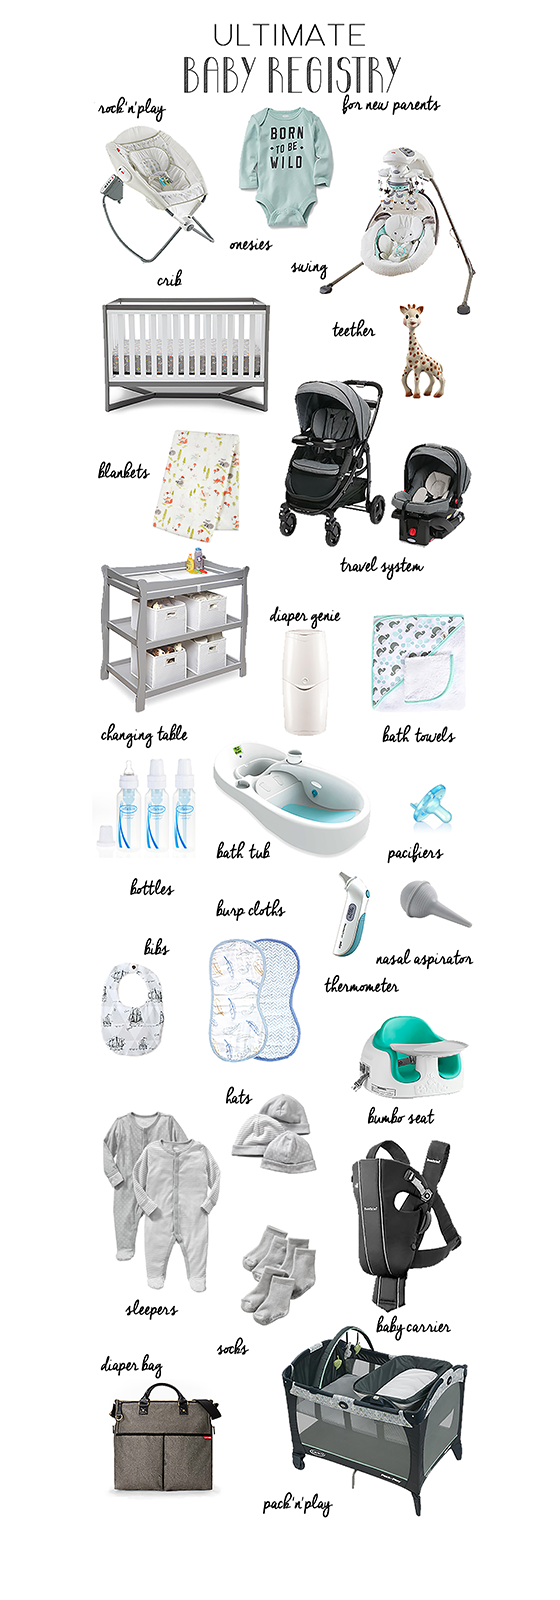 ultimate baby registry for new parents a list of everything you really need newborn - Baby Room Checklist